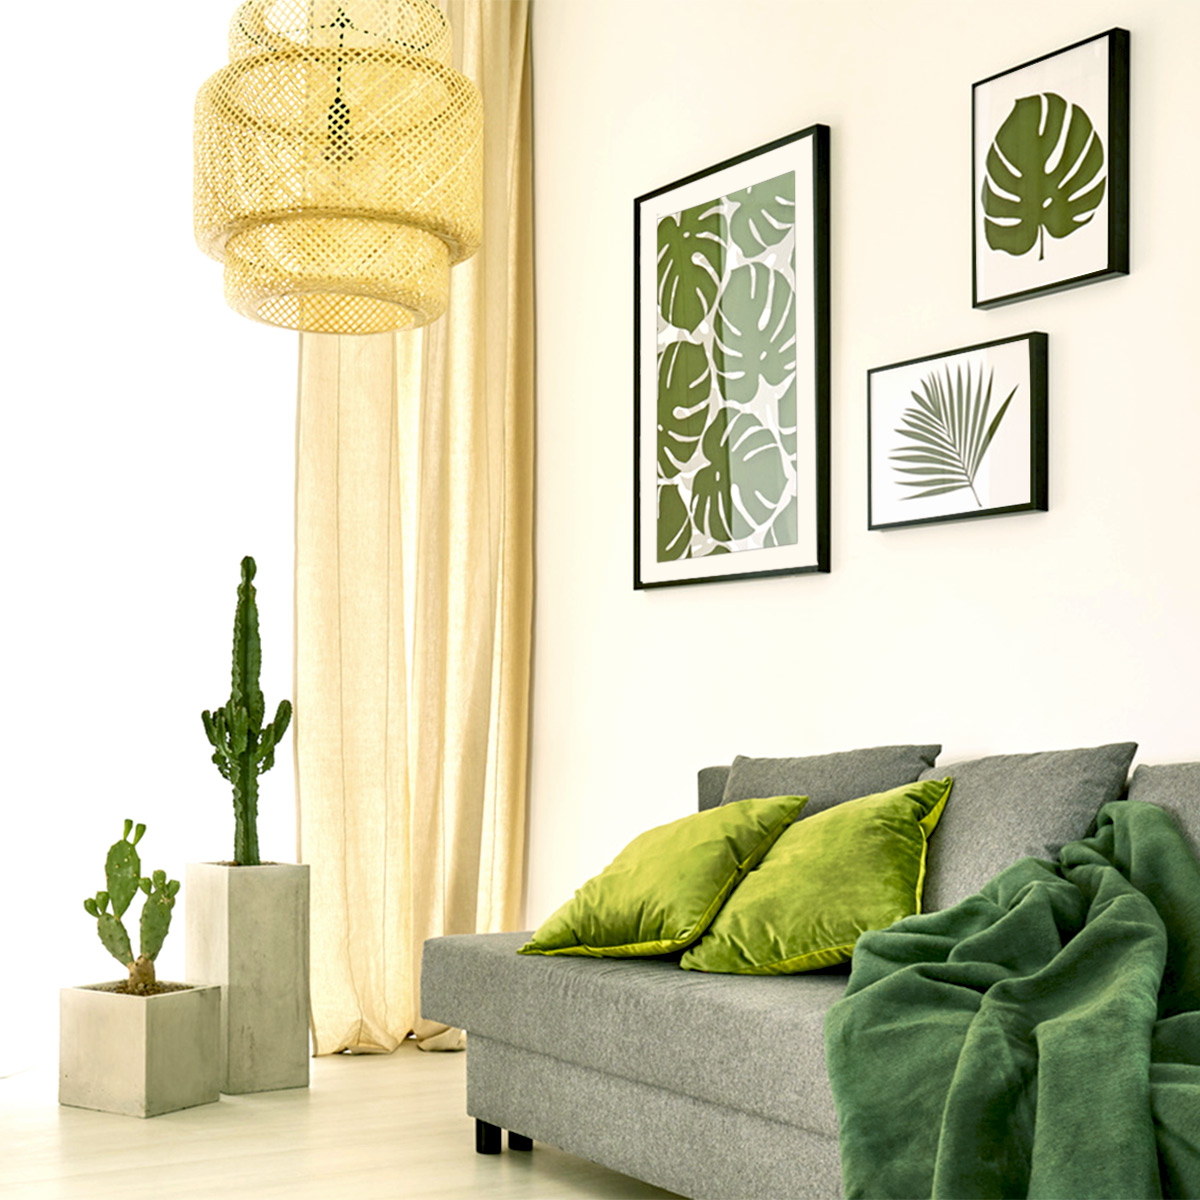 Pantone s colour of the year 2017 greenery in kids rooms - Adding Texture And Greenery To Home Decor